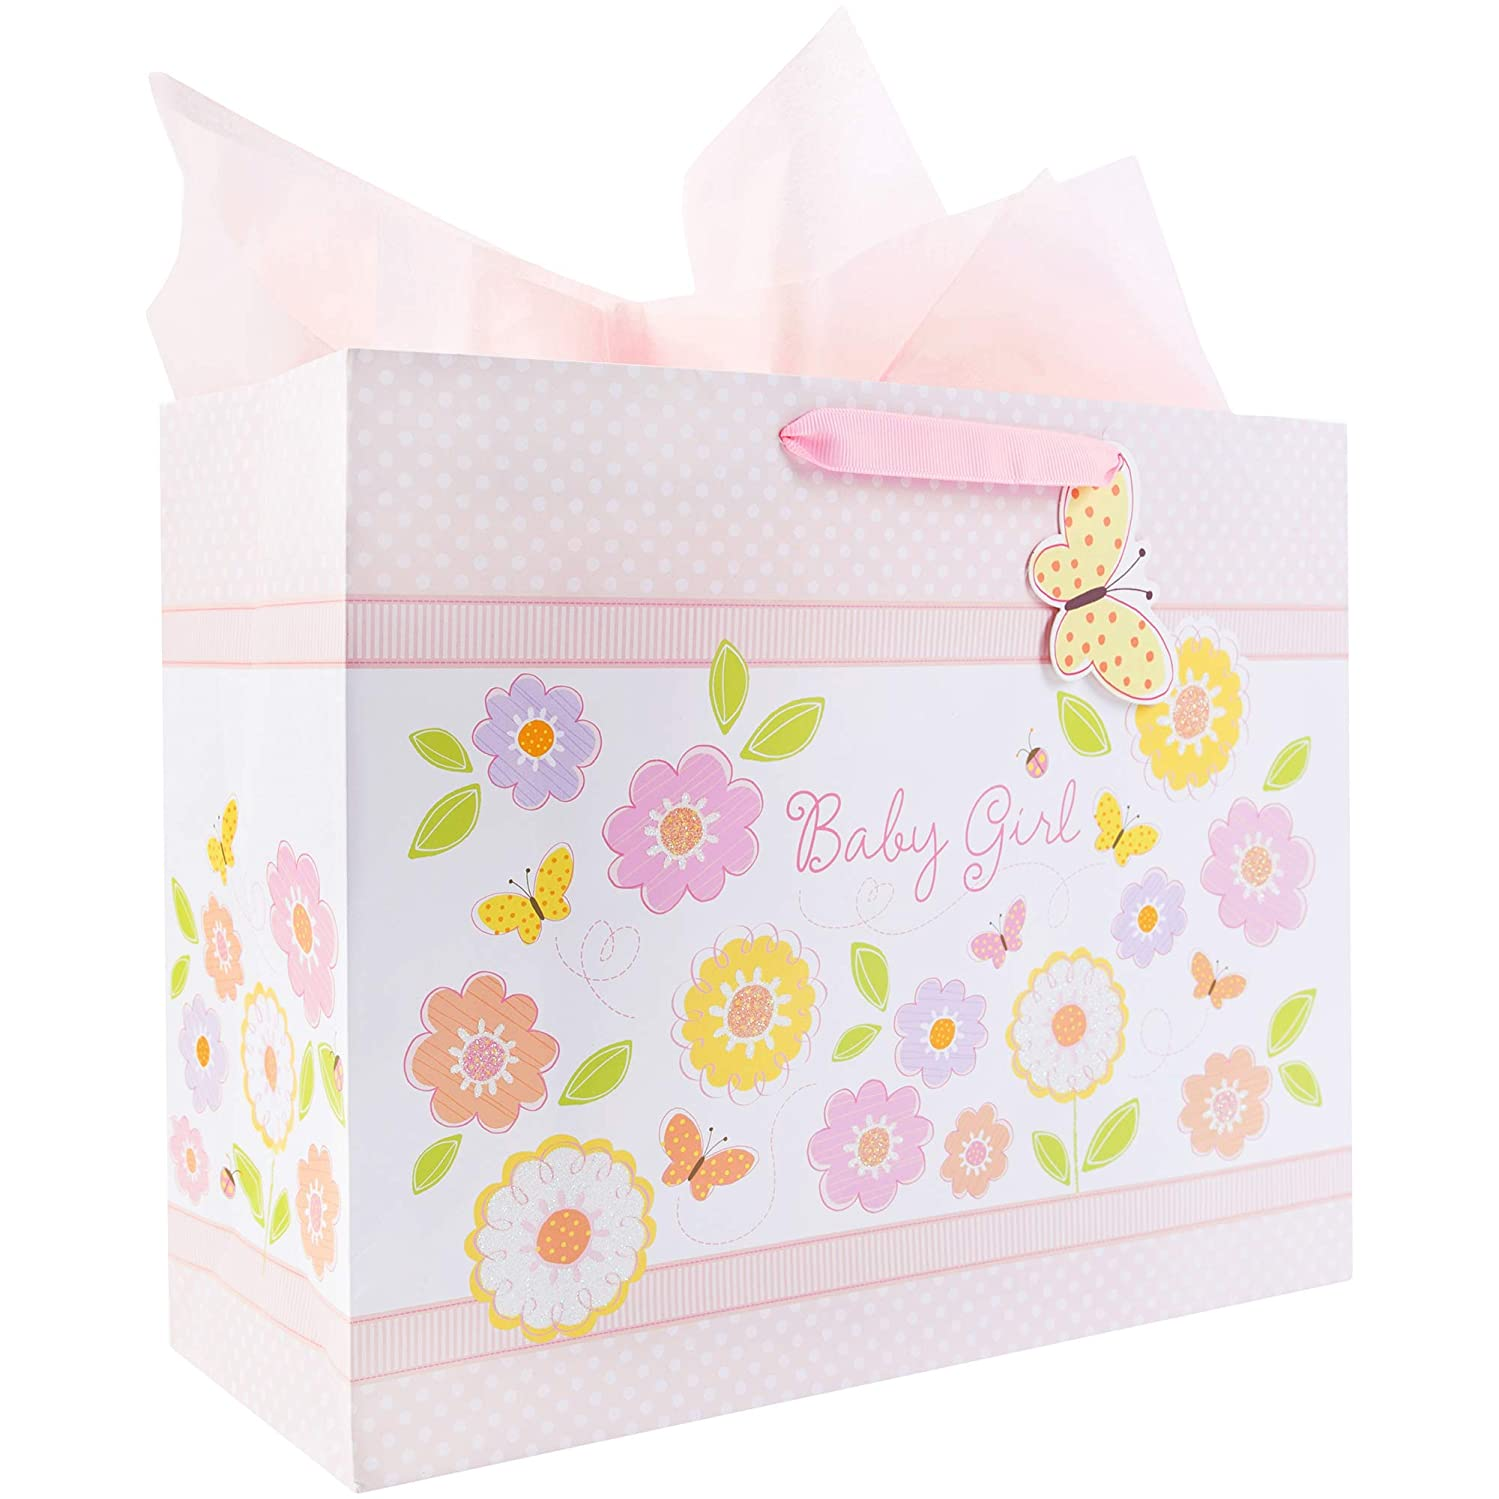 C.R. Gibson 'Sweet Baby Girl' Large Baby Gift Bag with Tissue Paper, 12.5'' W x 10.25'' H x 4.25'' D